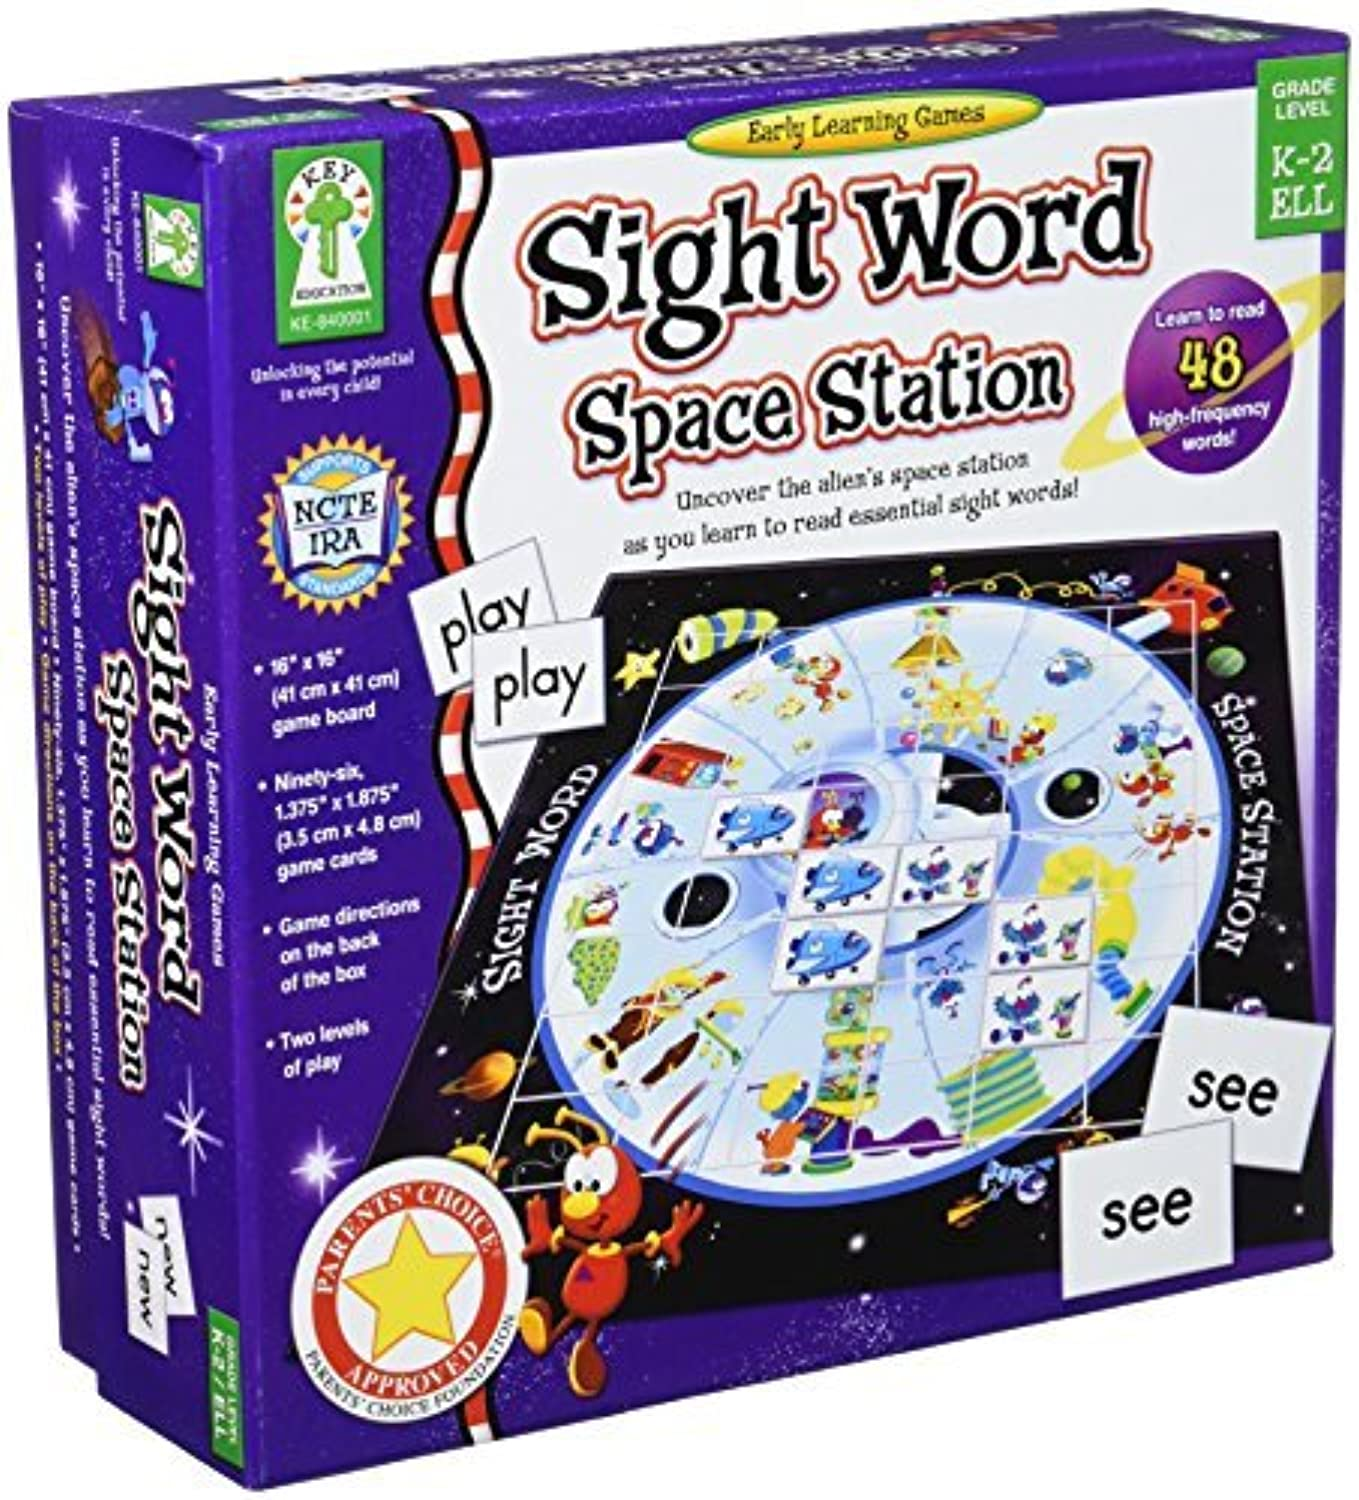 Sight Word Space Station Educational Board Game by Key Education